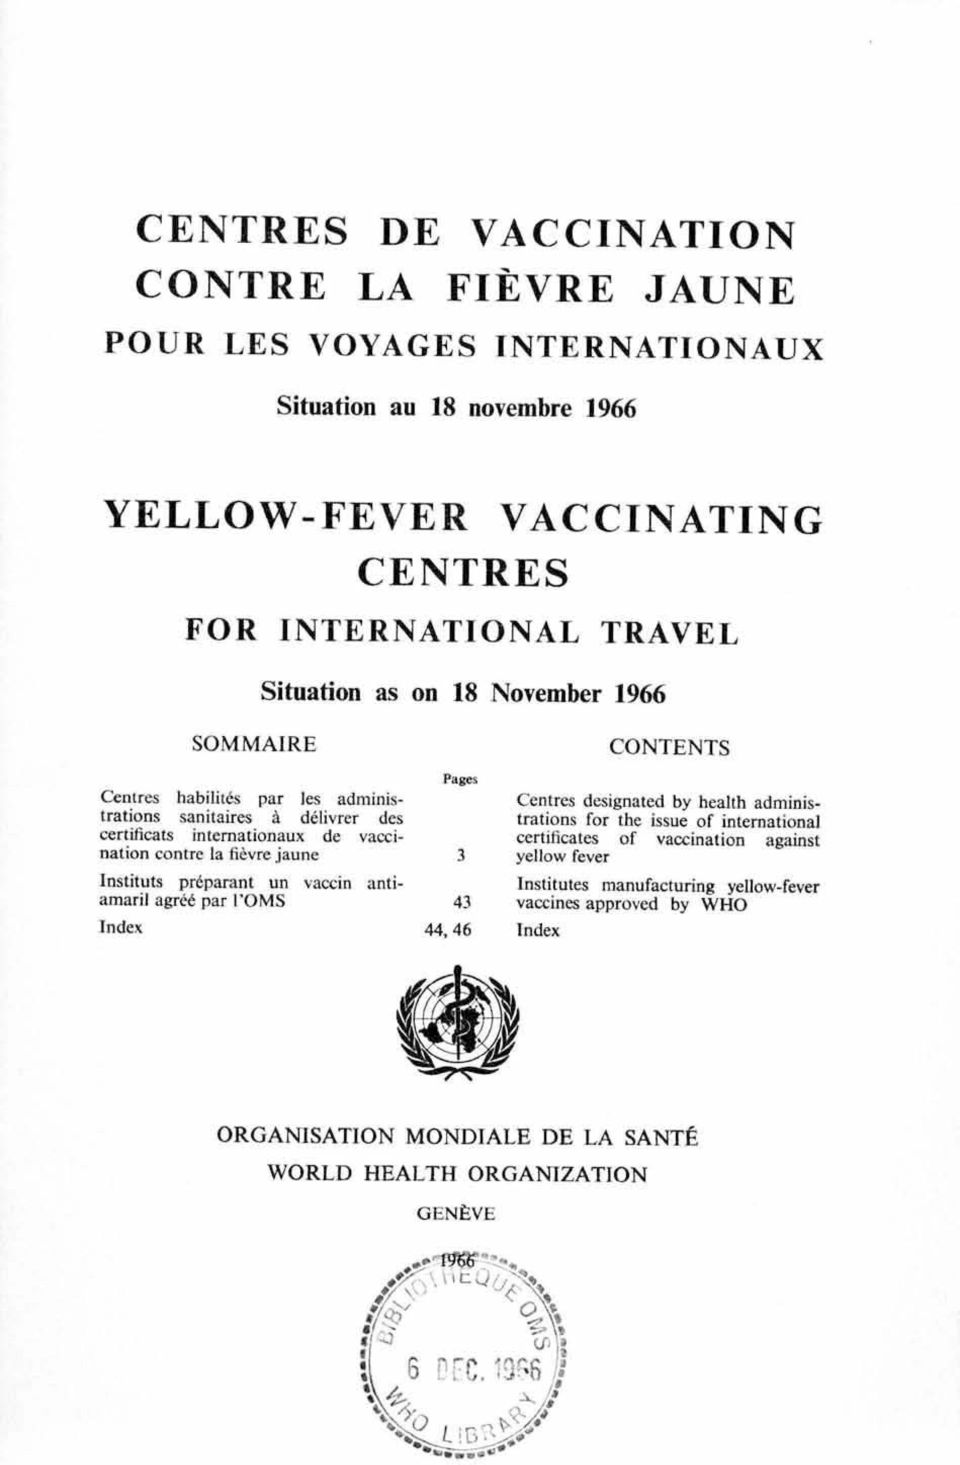 jaune Instituts préparant un vaccin antiamaril agréé par l'oms Index Pages 43 44, 46 CONTENTS Centres designated by health administrations for the issue of international